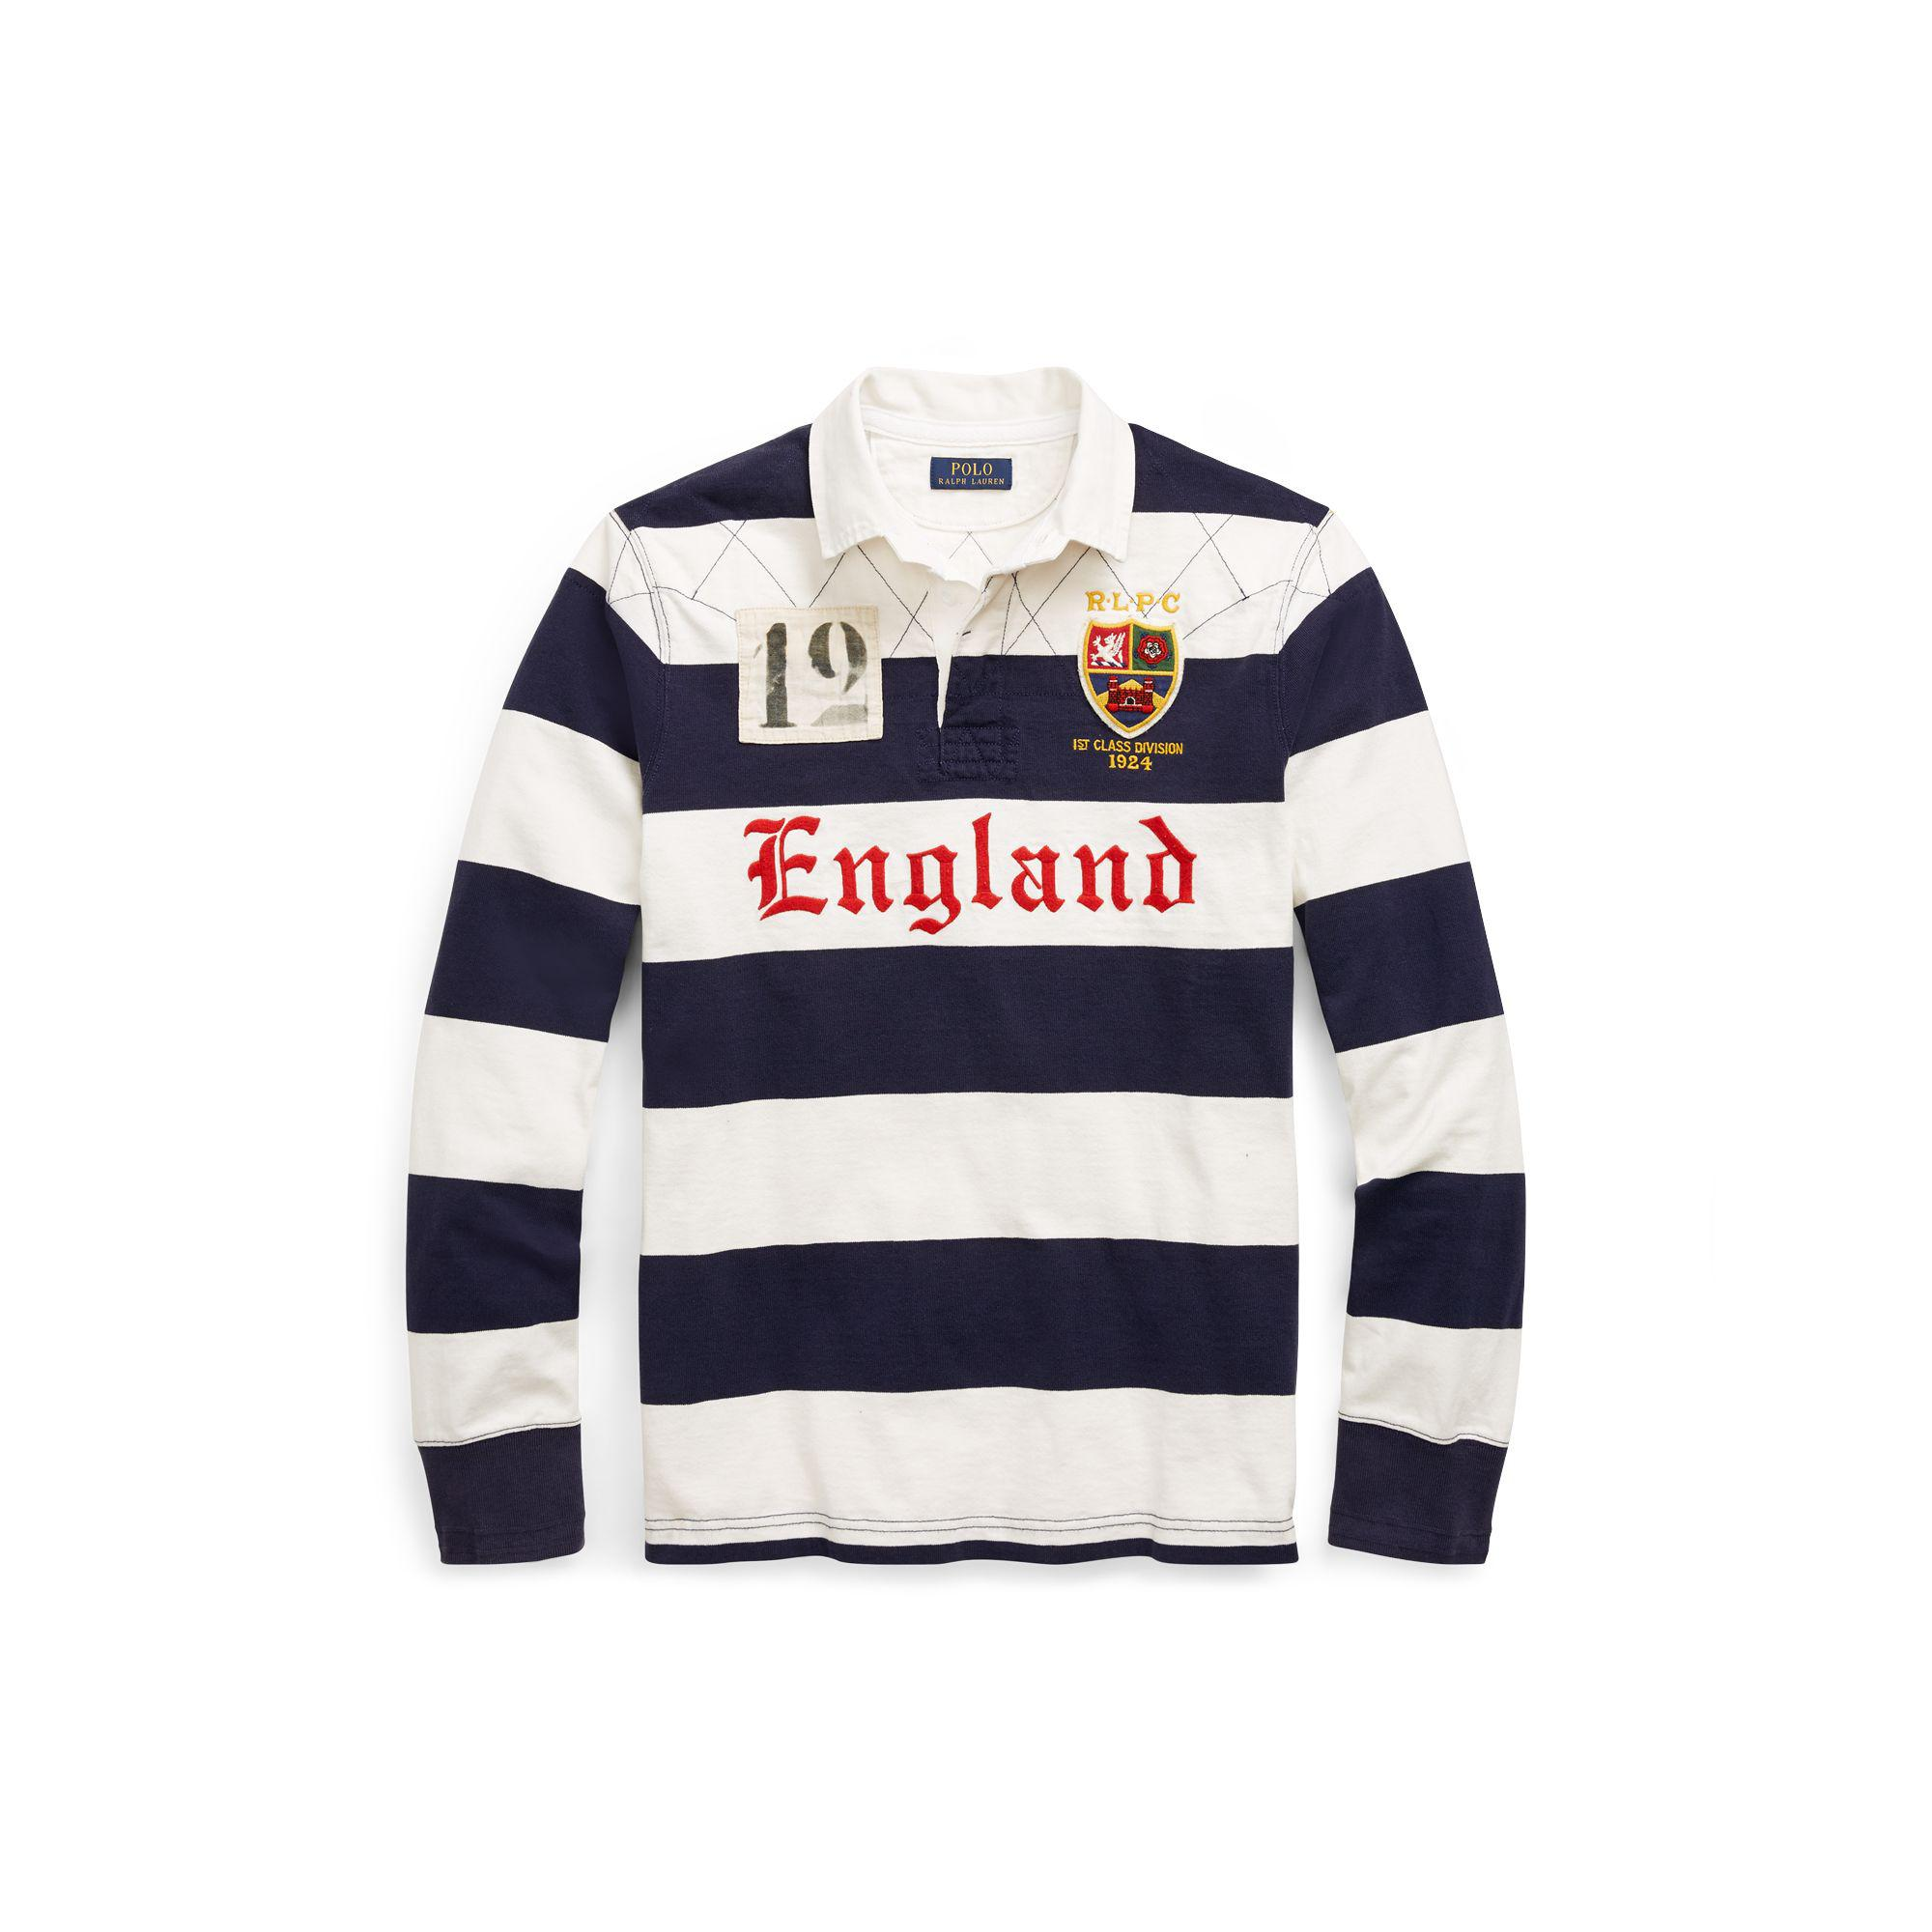 The Shirt Ralph Blue For Lauren Rugby Polo Men Iconic 34cAjq5LR